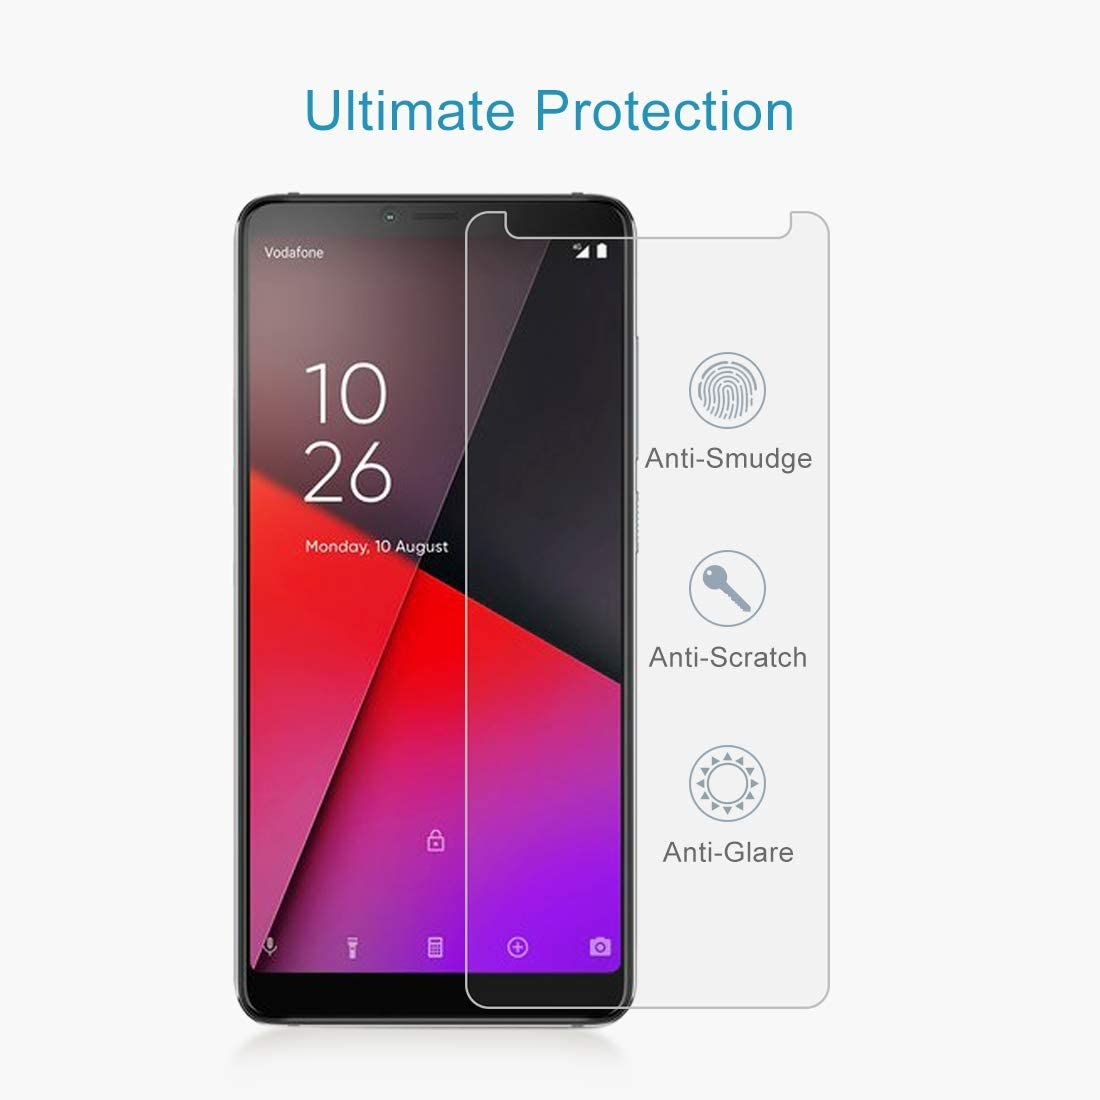 Wangl Mobile Phone Tempered Glass Film 100 PCS 0.26mm 9H 2.5D Explosion-Proof Tempered Glass Film for Vodafone Smart X9 Tempered Glass Film